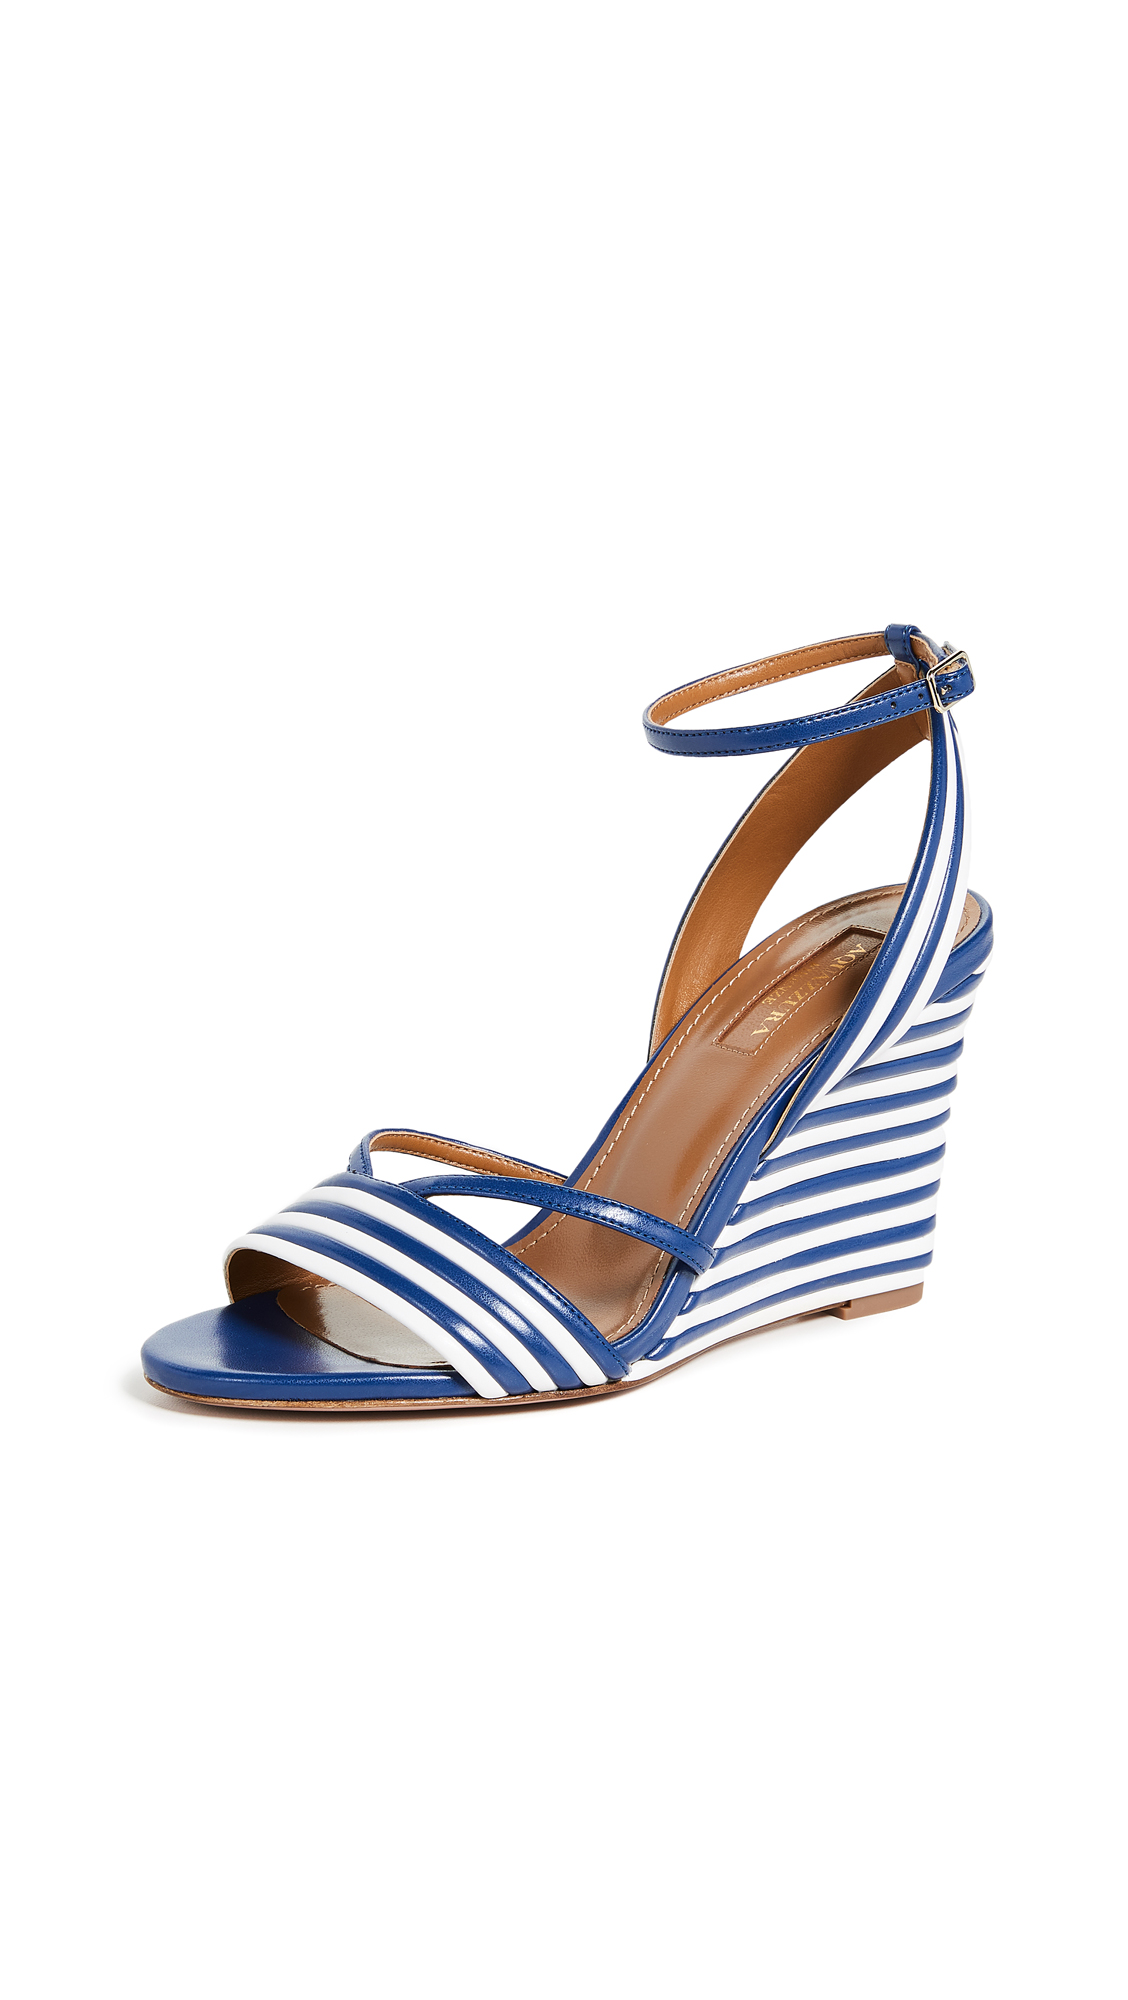 Aquazzura Sundance Wedge 85 Sandals - White/Cobalt